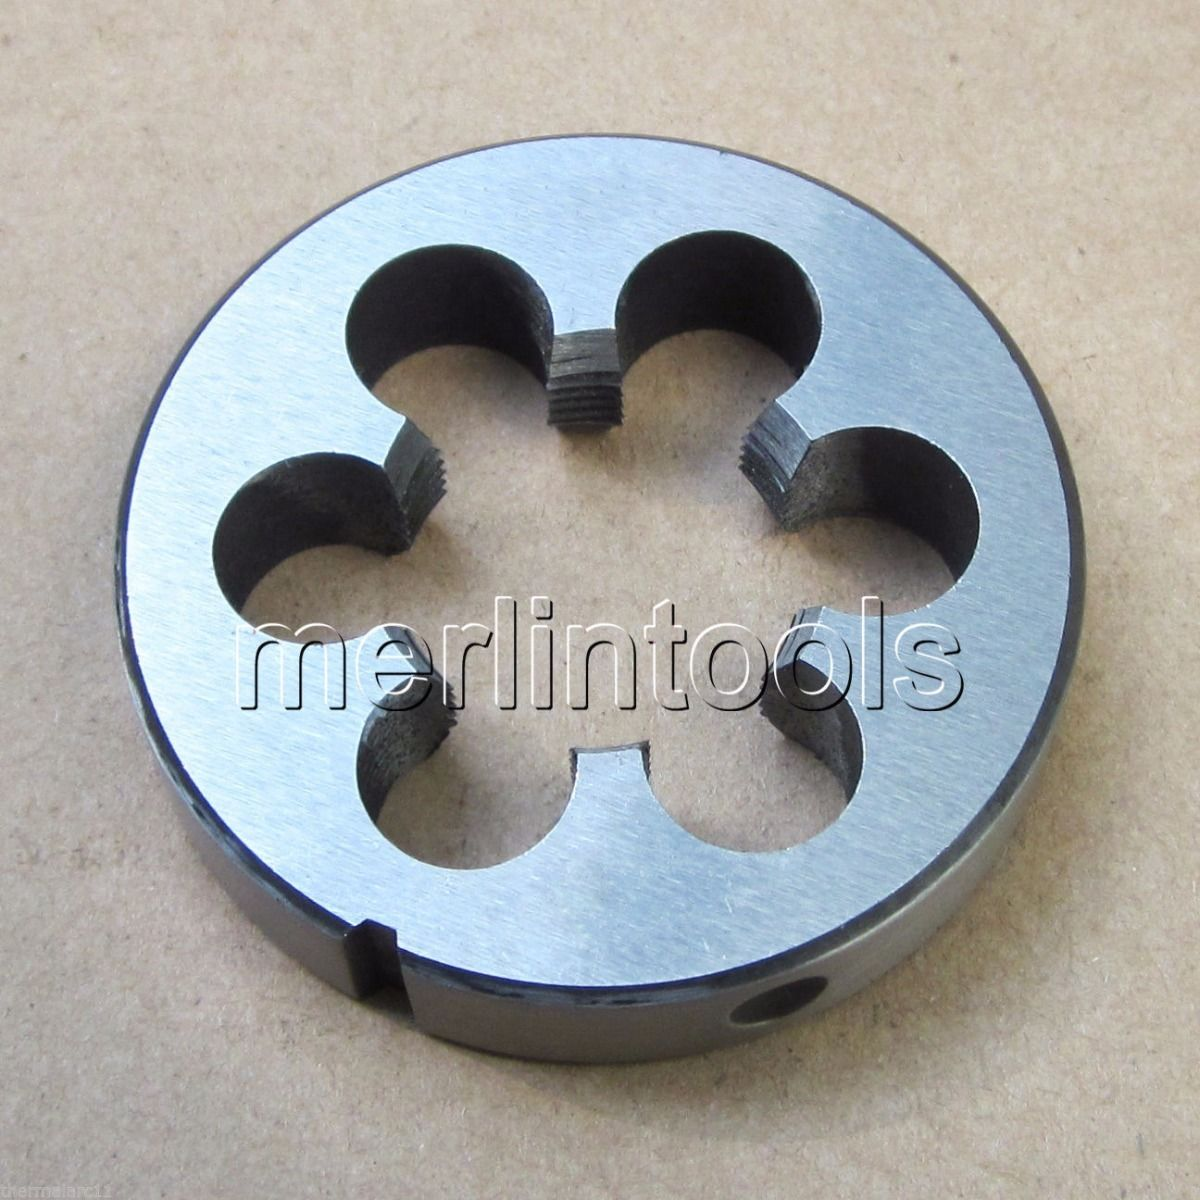 1 3/8 - 24 Right Hand Thread Die 1 3/8 - 24 TPI<br>